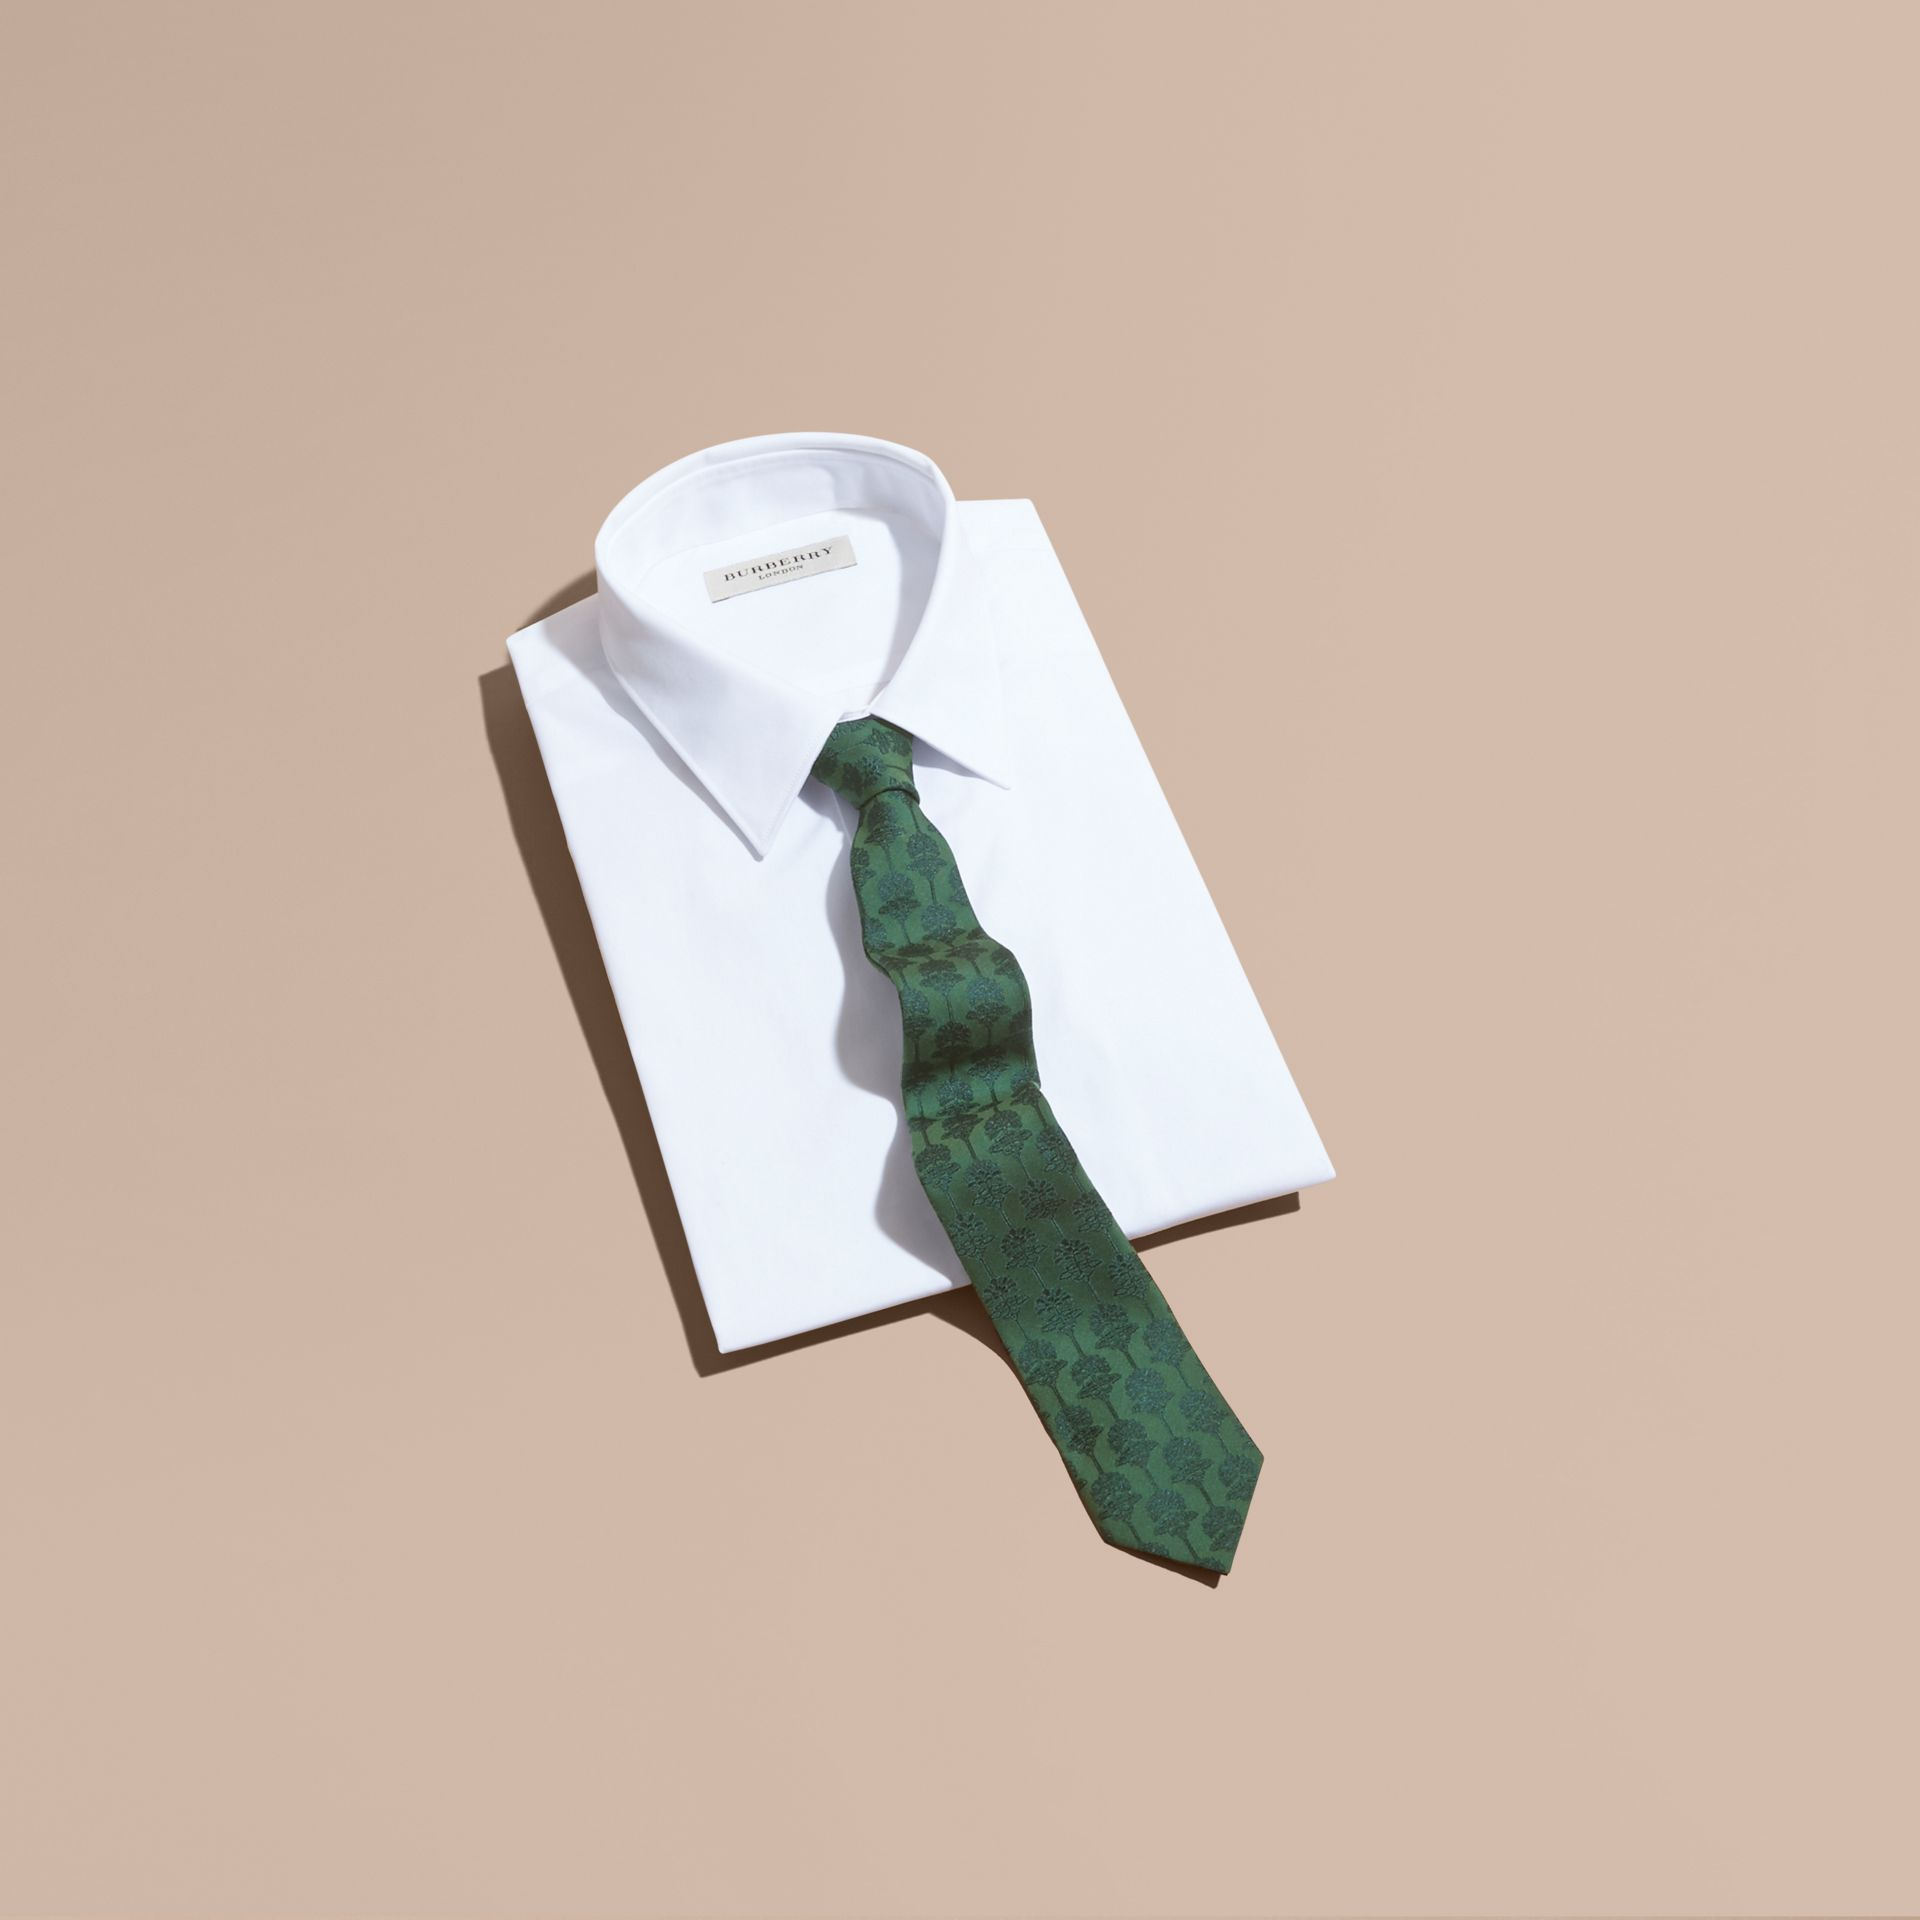 Slim Cut Floral Jacquard Silk Cotton Tie in Pine Green - Men | Burberry Singapore - gallery image 4